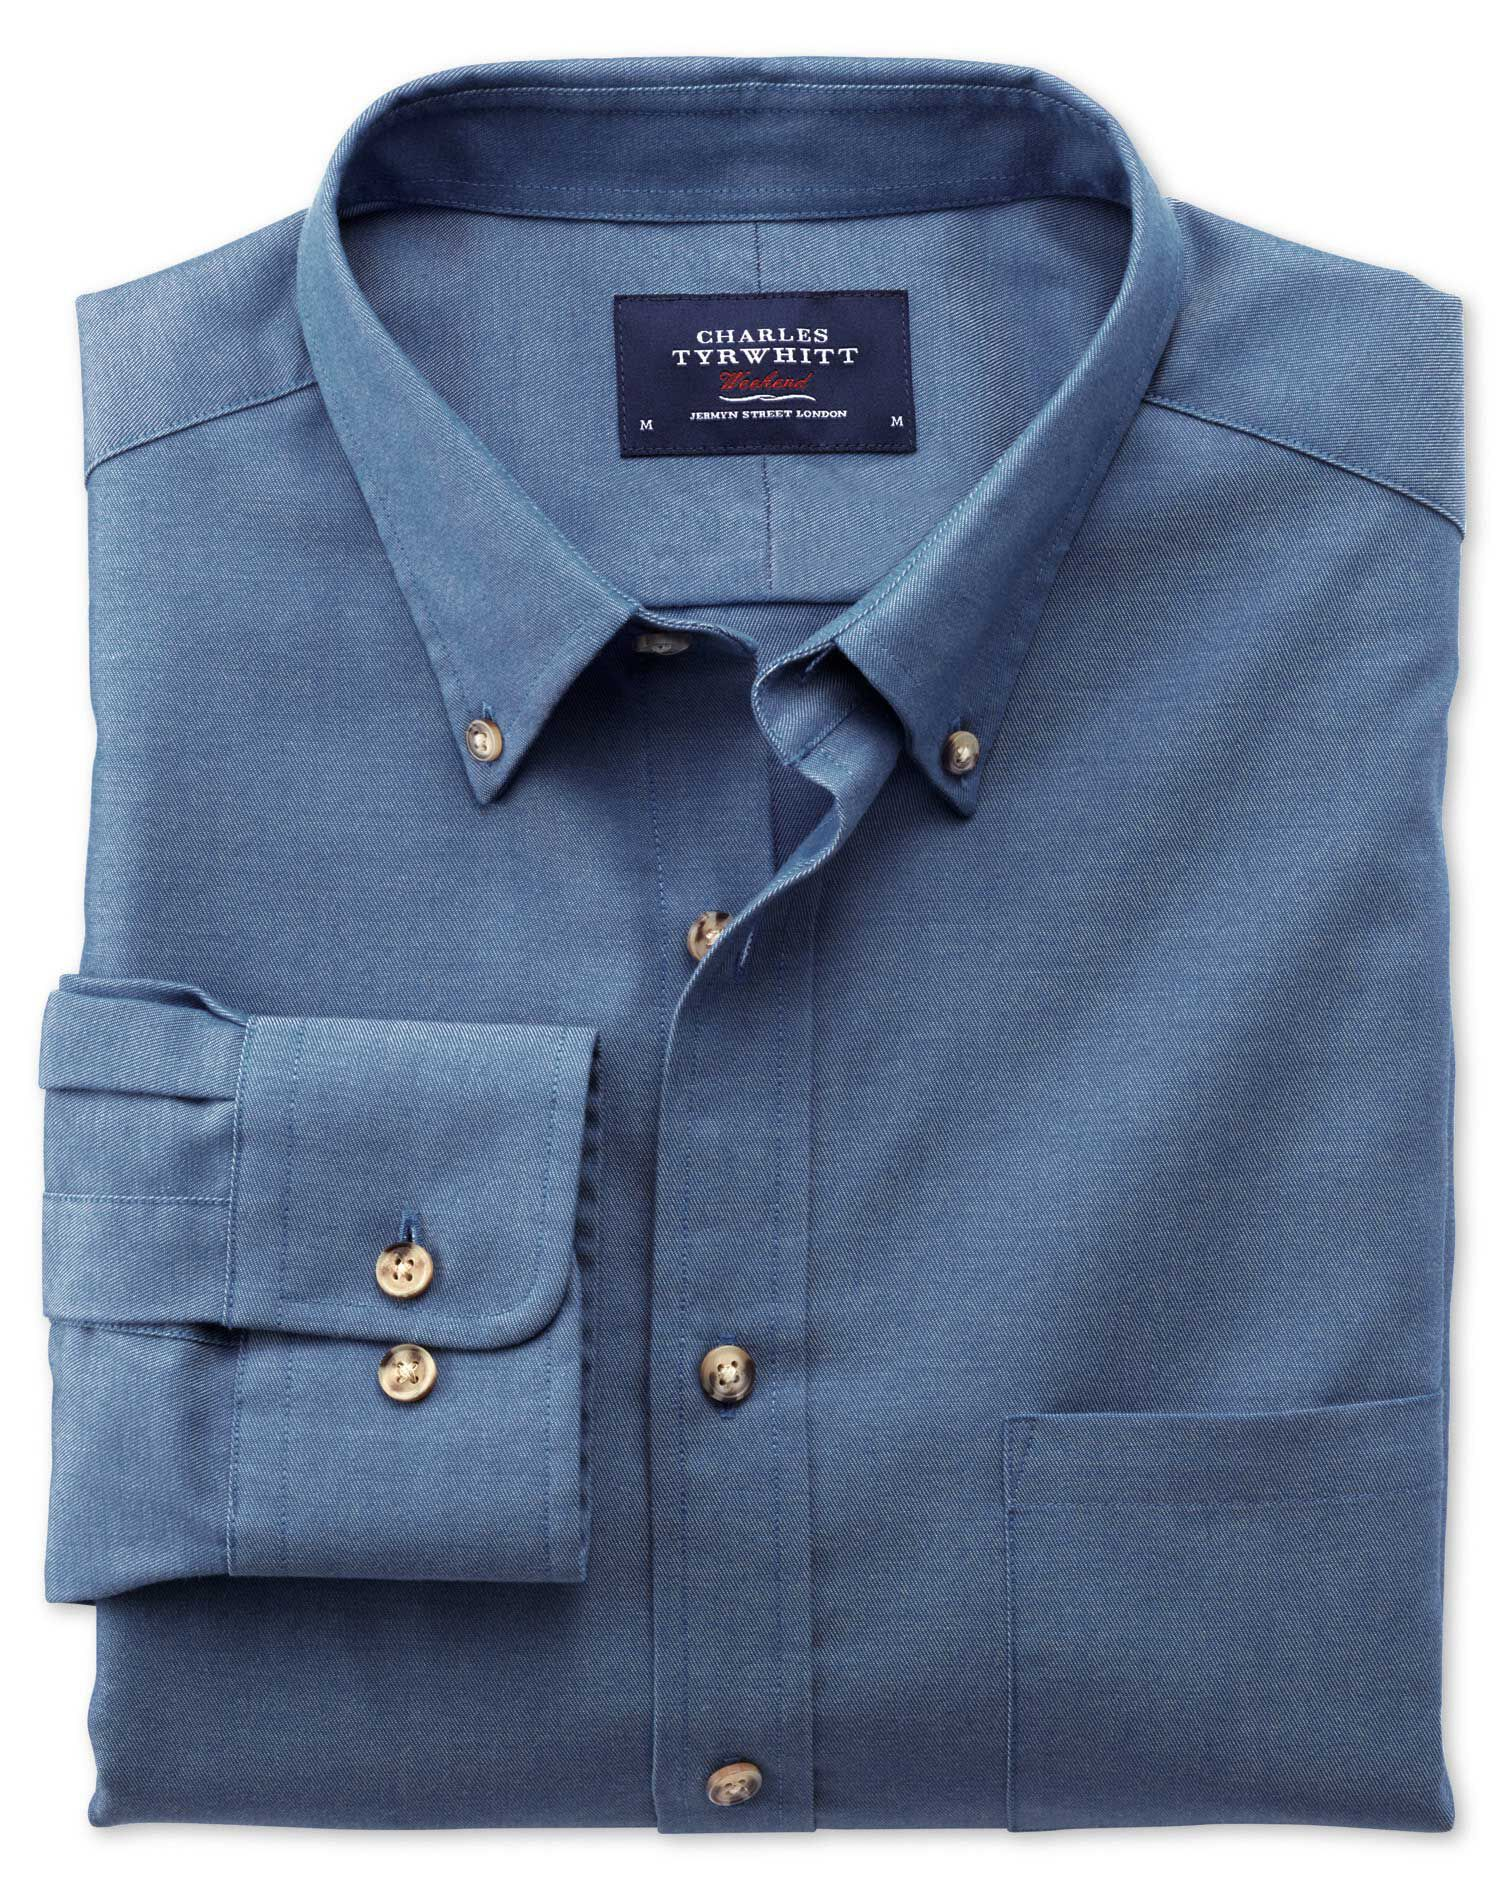 Extra Slim Fit Non-Iron Twill Blue Cotton Shirt Single Cuff Size Large by Charles Tyrwhitt